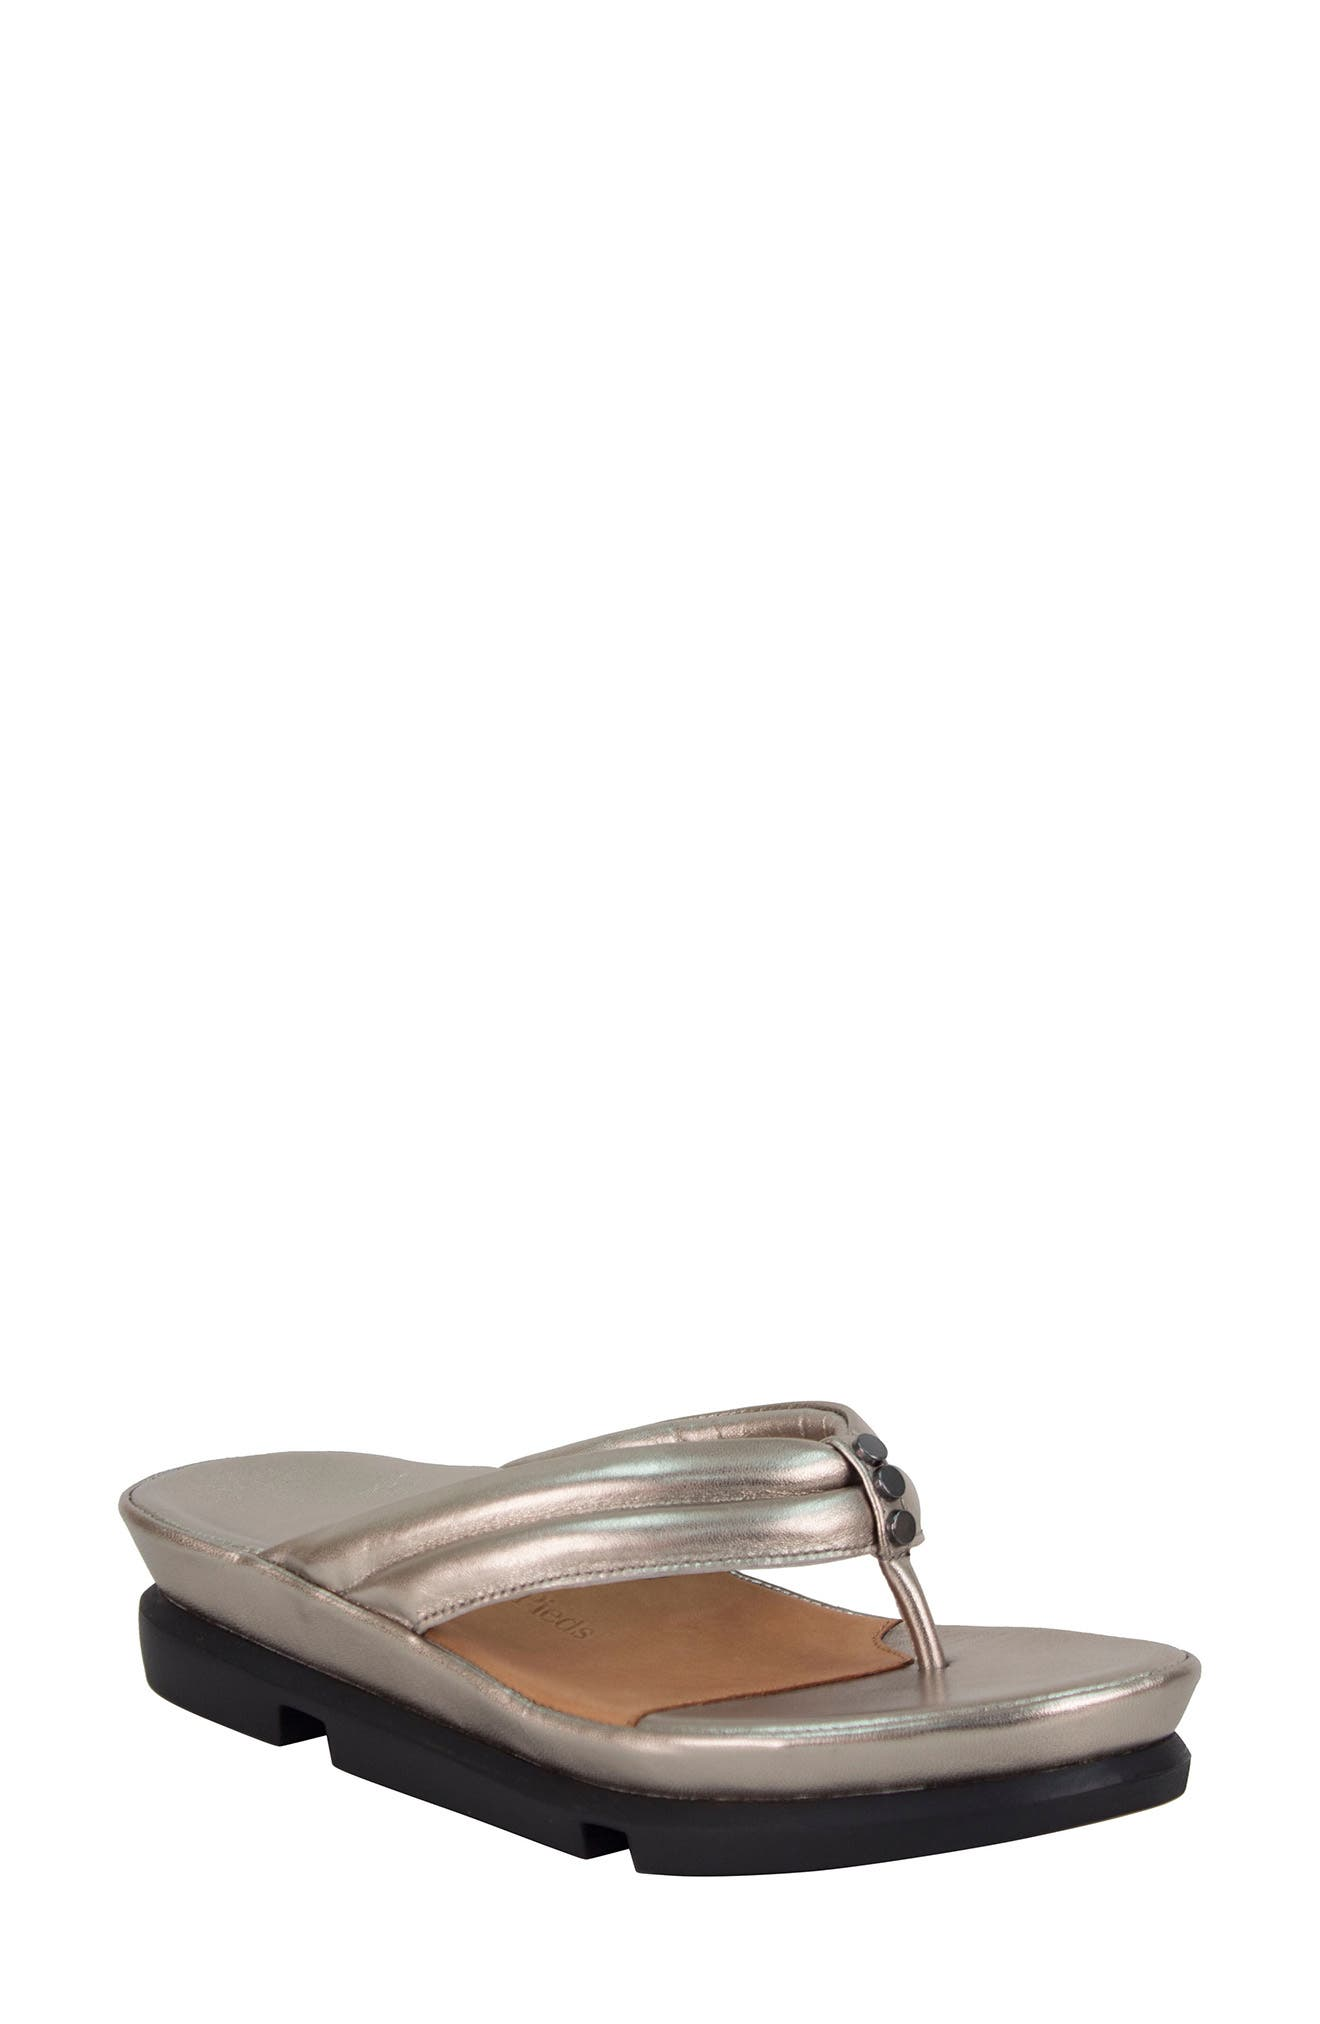 L'AMOUR DES PIEDS, Villapapavero Flip Flop, Main thumbnail 1, color, PEWTER LEATHER